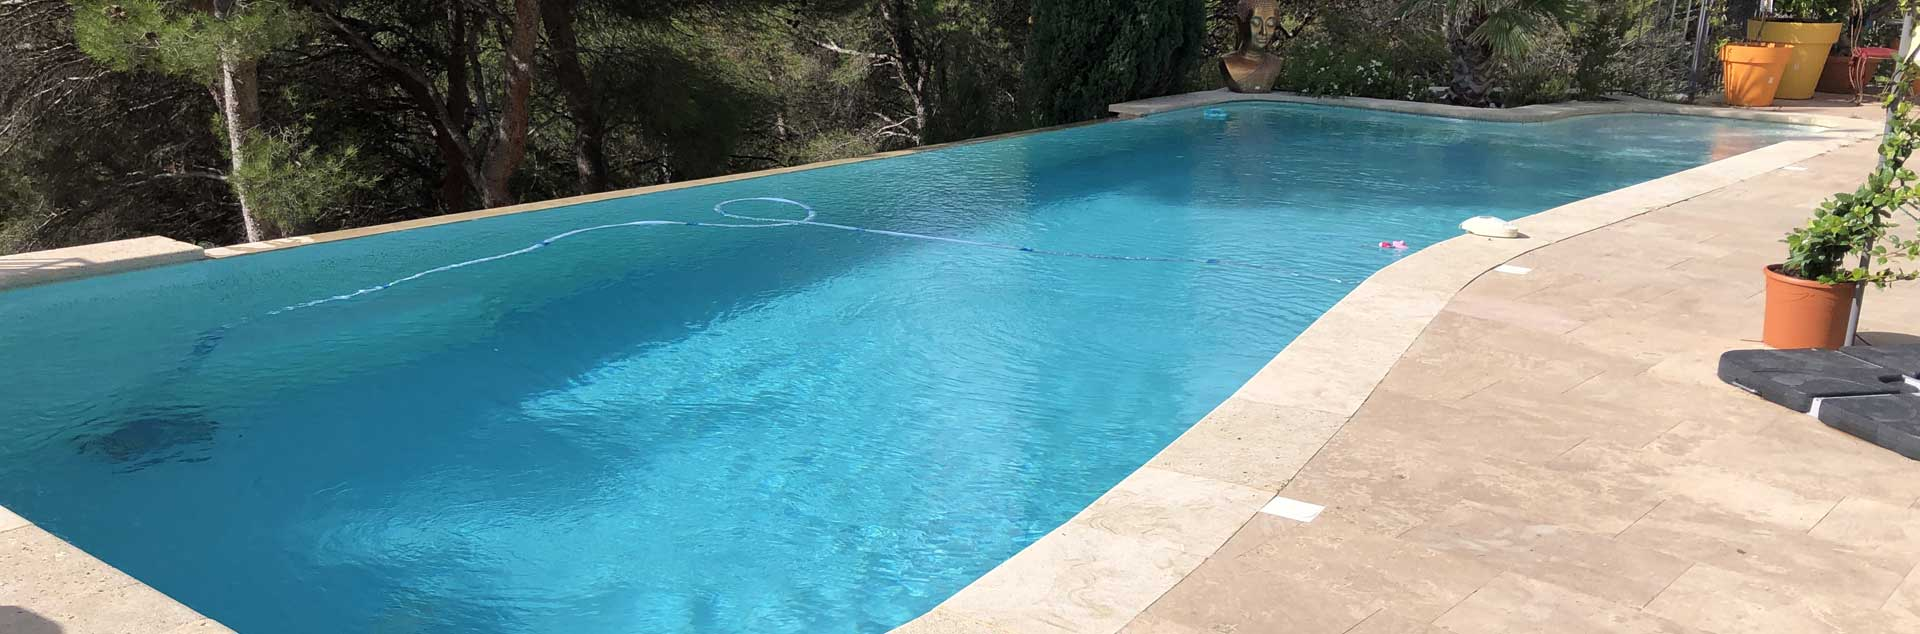 Sp cialiste piscines venasque construction et r novation for Construction piscine 84